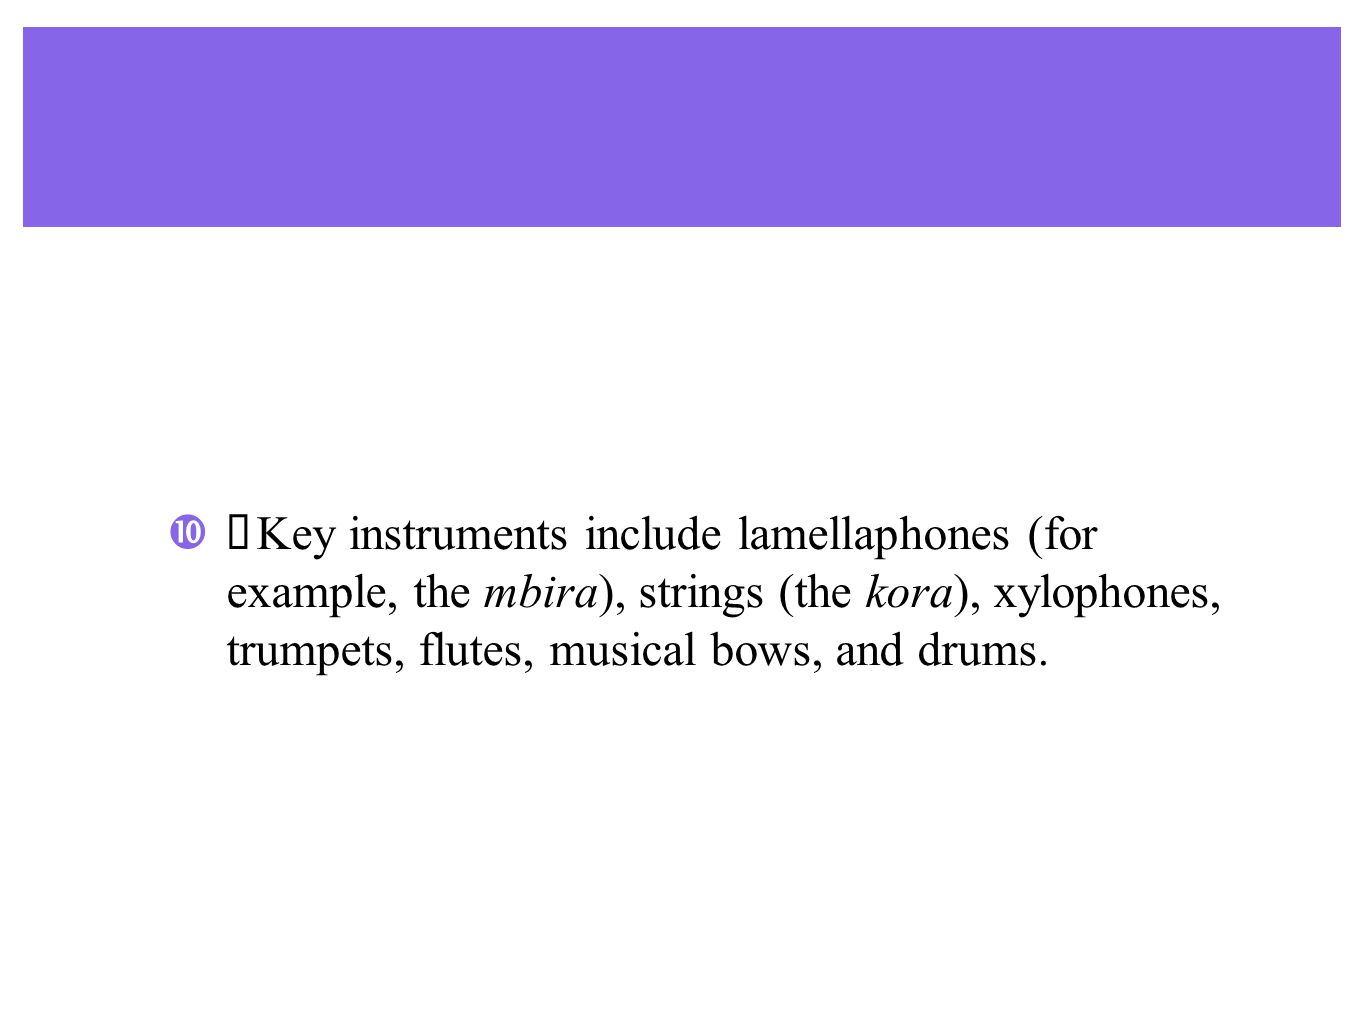 ♣ Key instruments include lamellaphones (for example, the mbira), strings (the kora), xylophones, trumpets, flutes, musical bows, and drums.